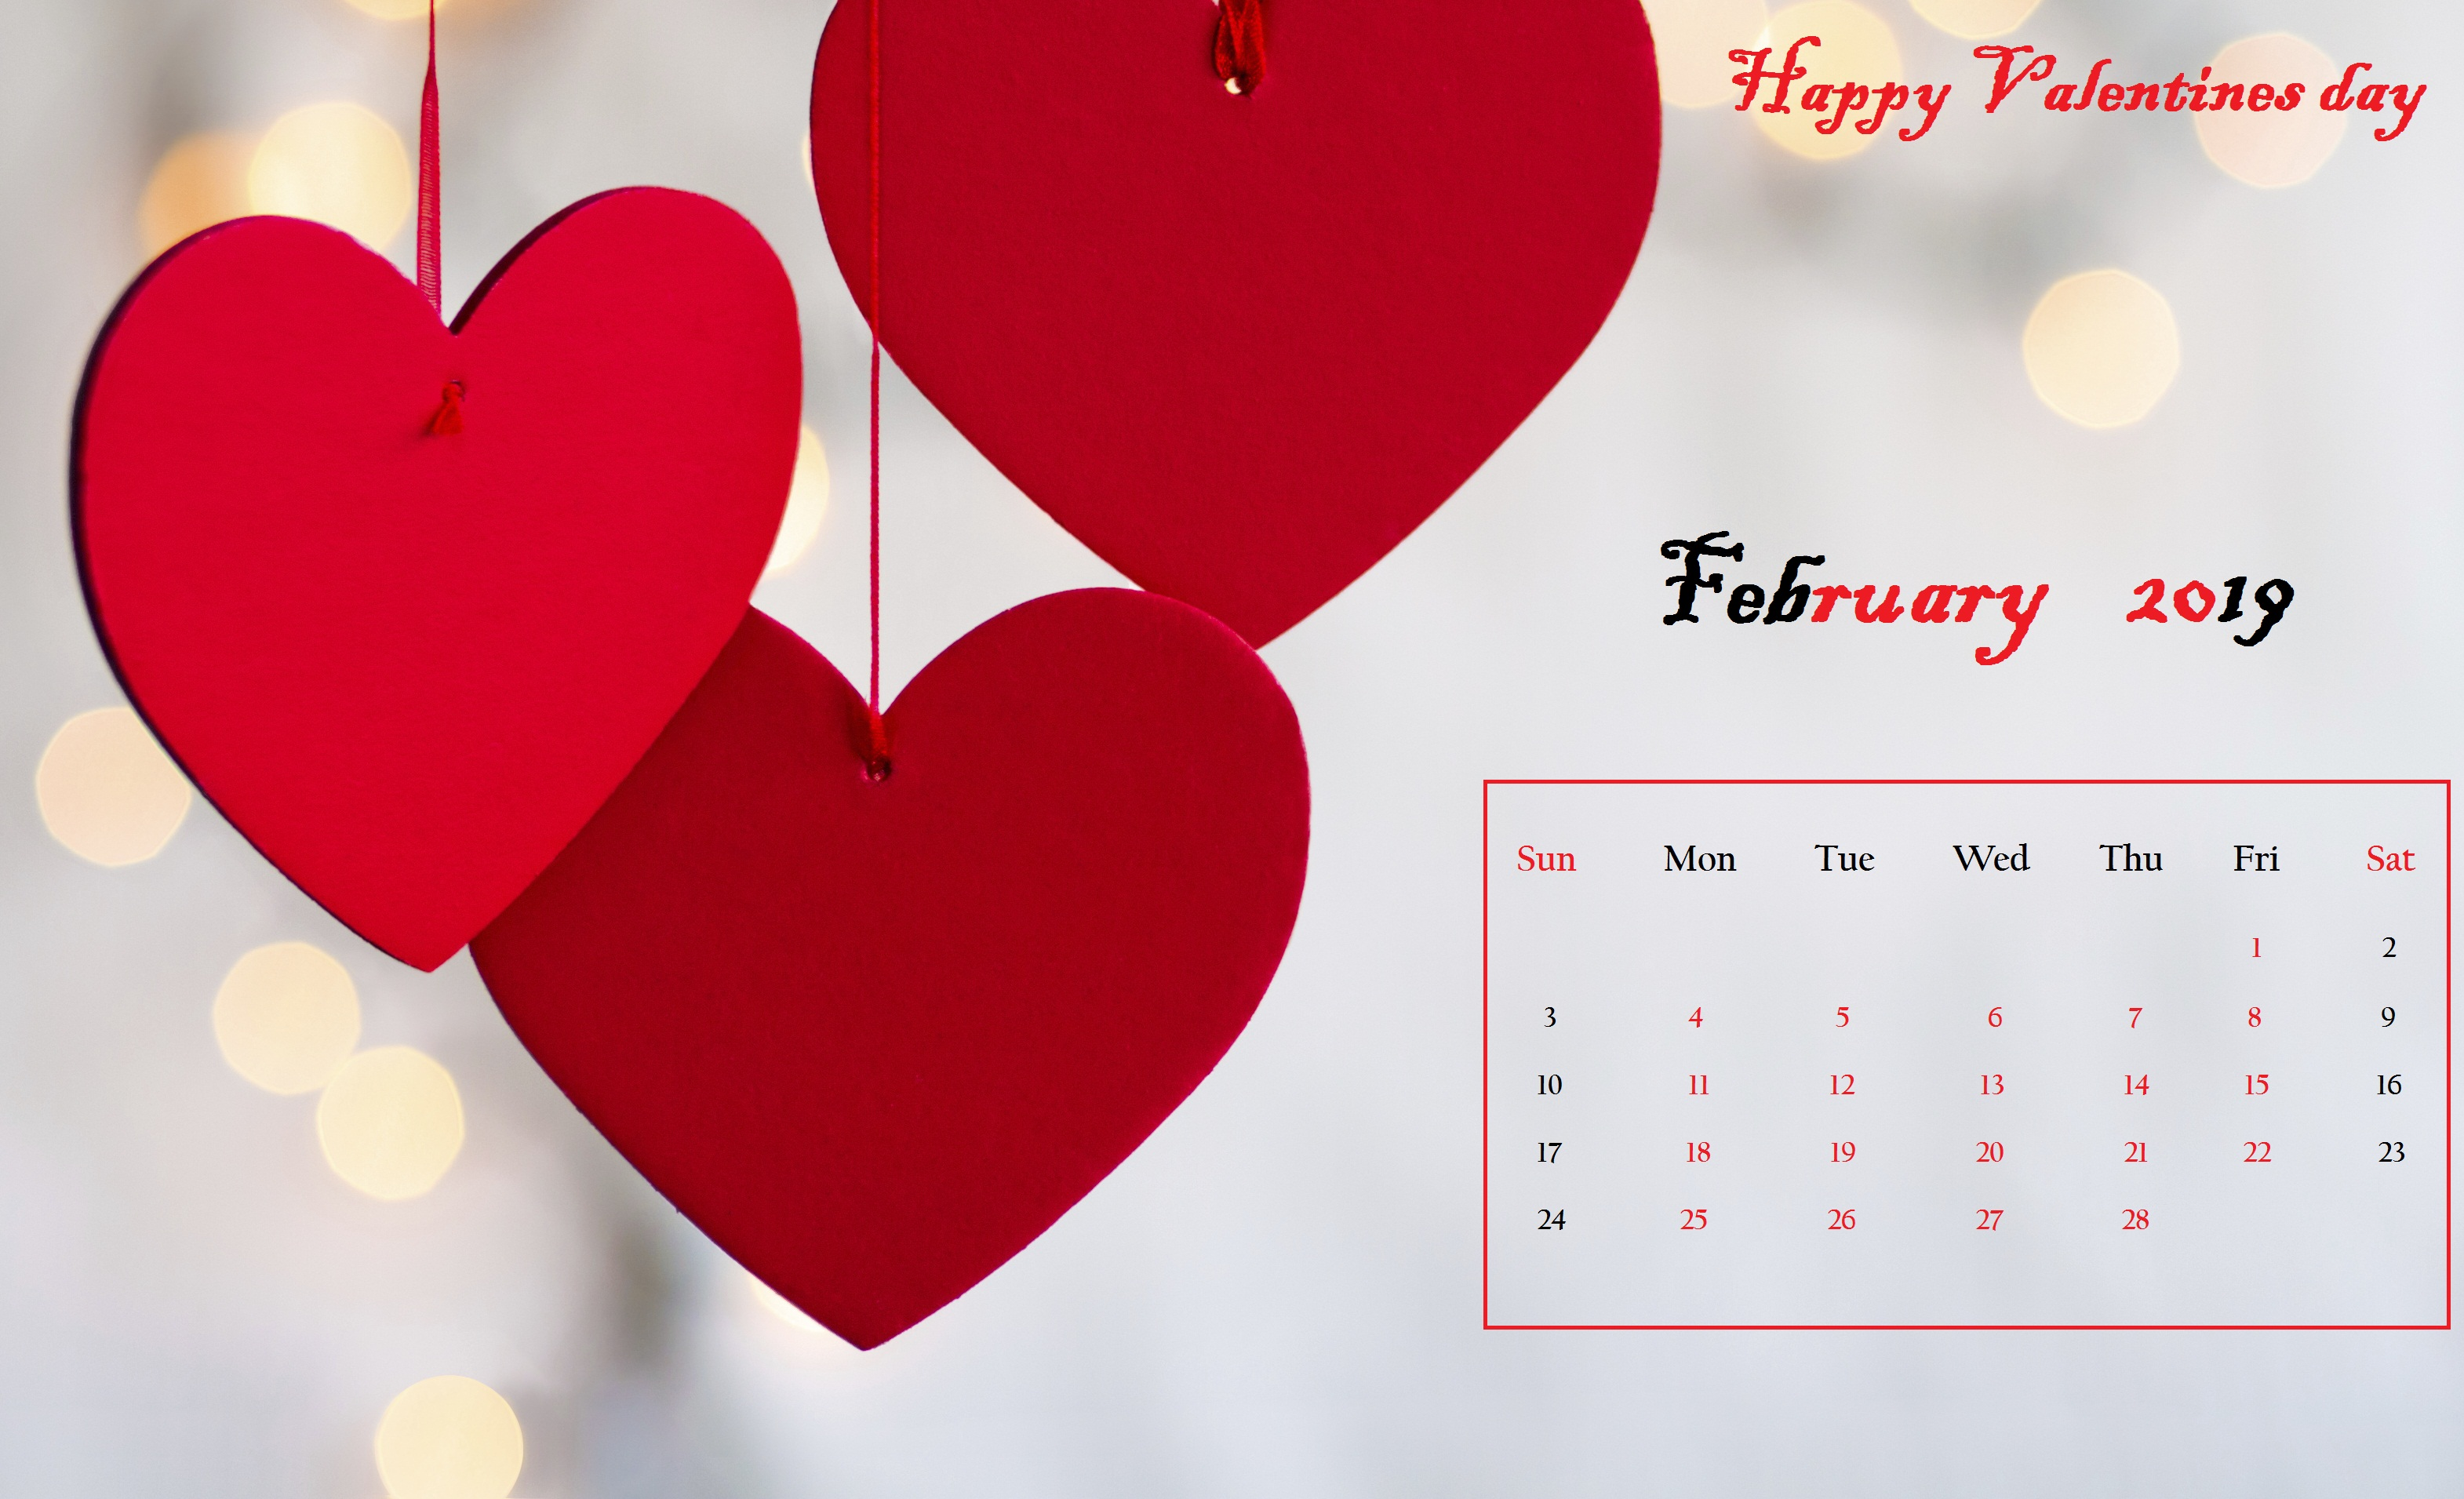 Red heart Desktop Calendar February 2019